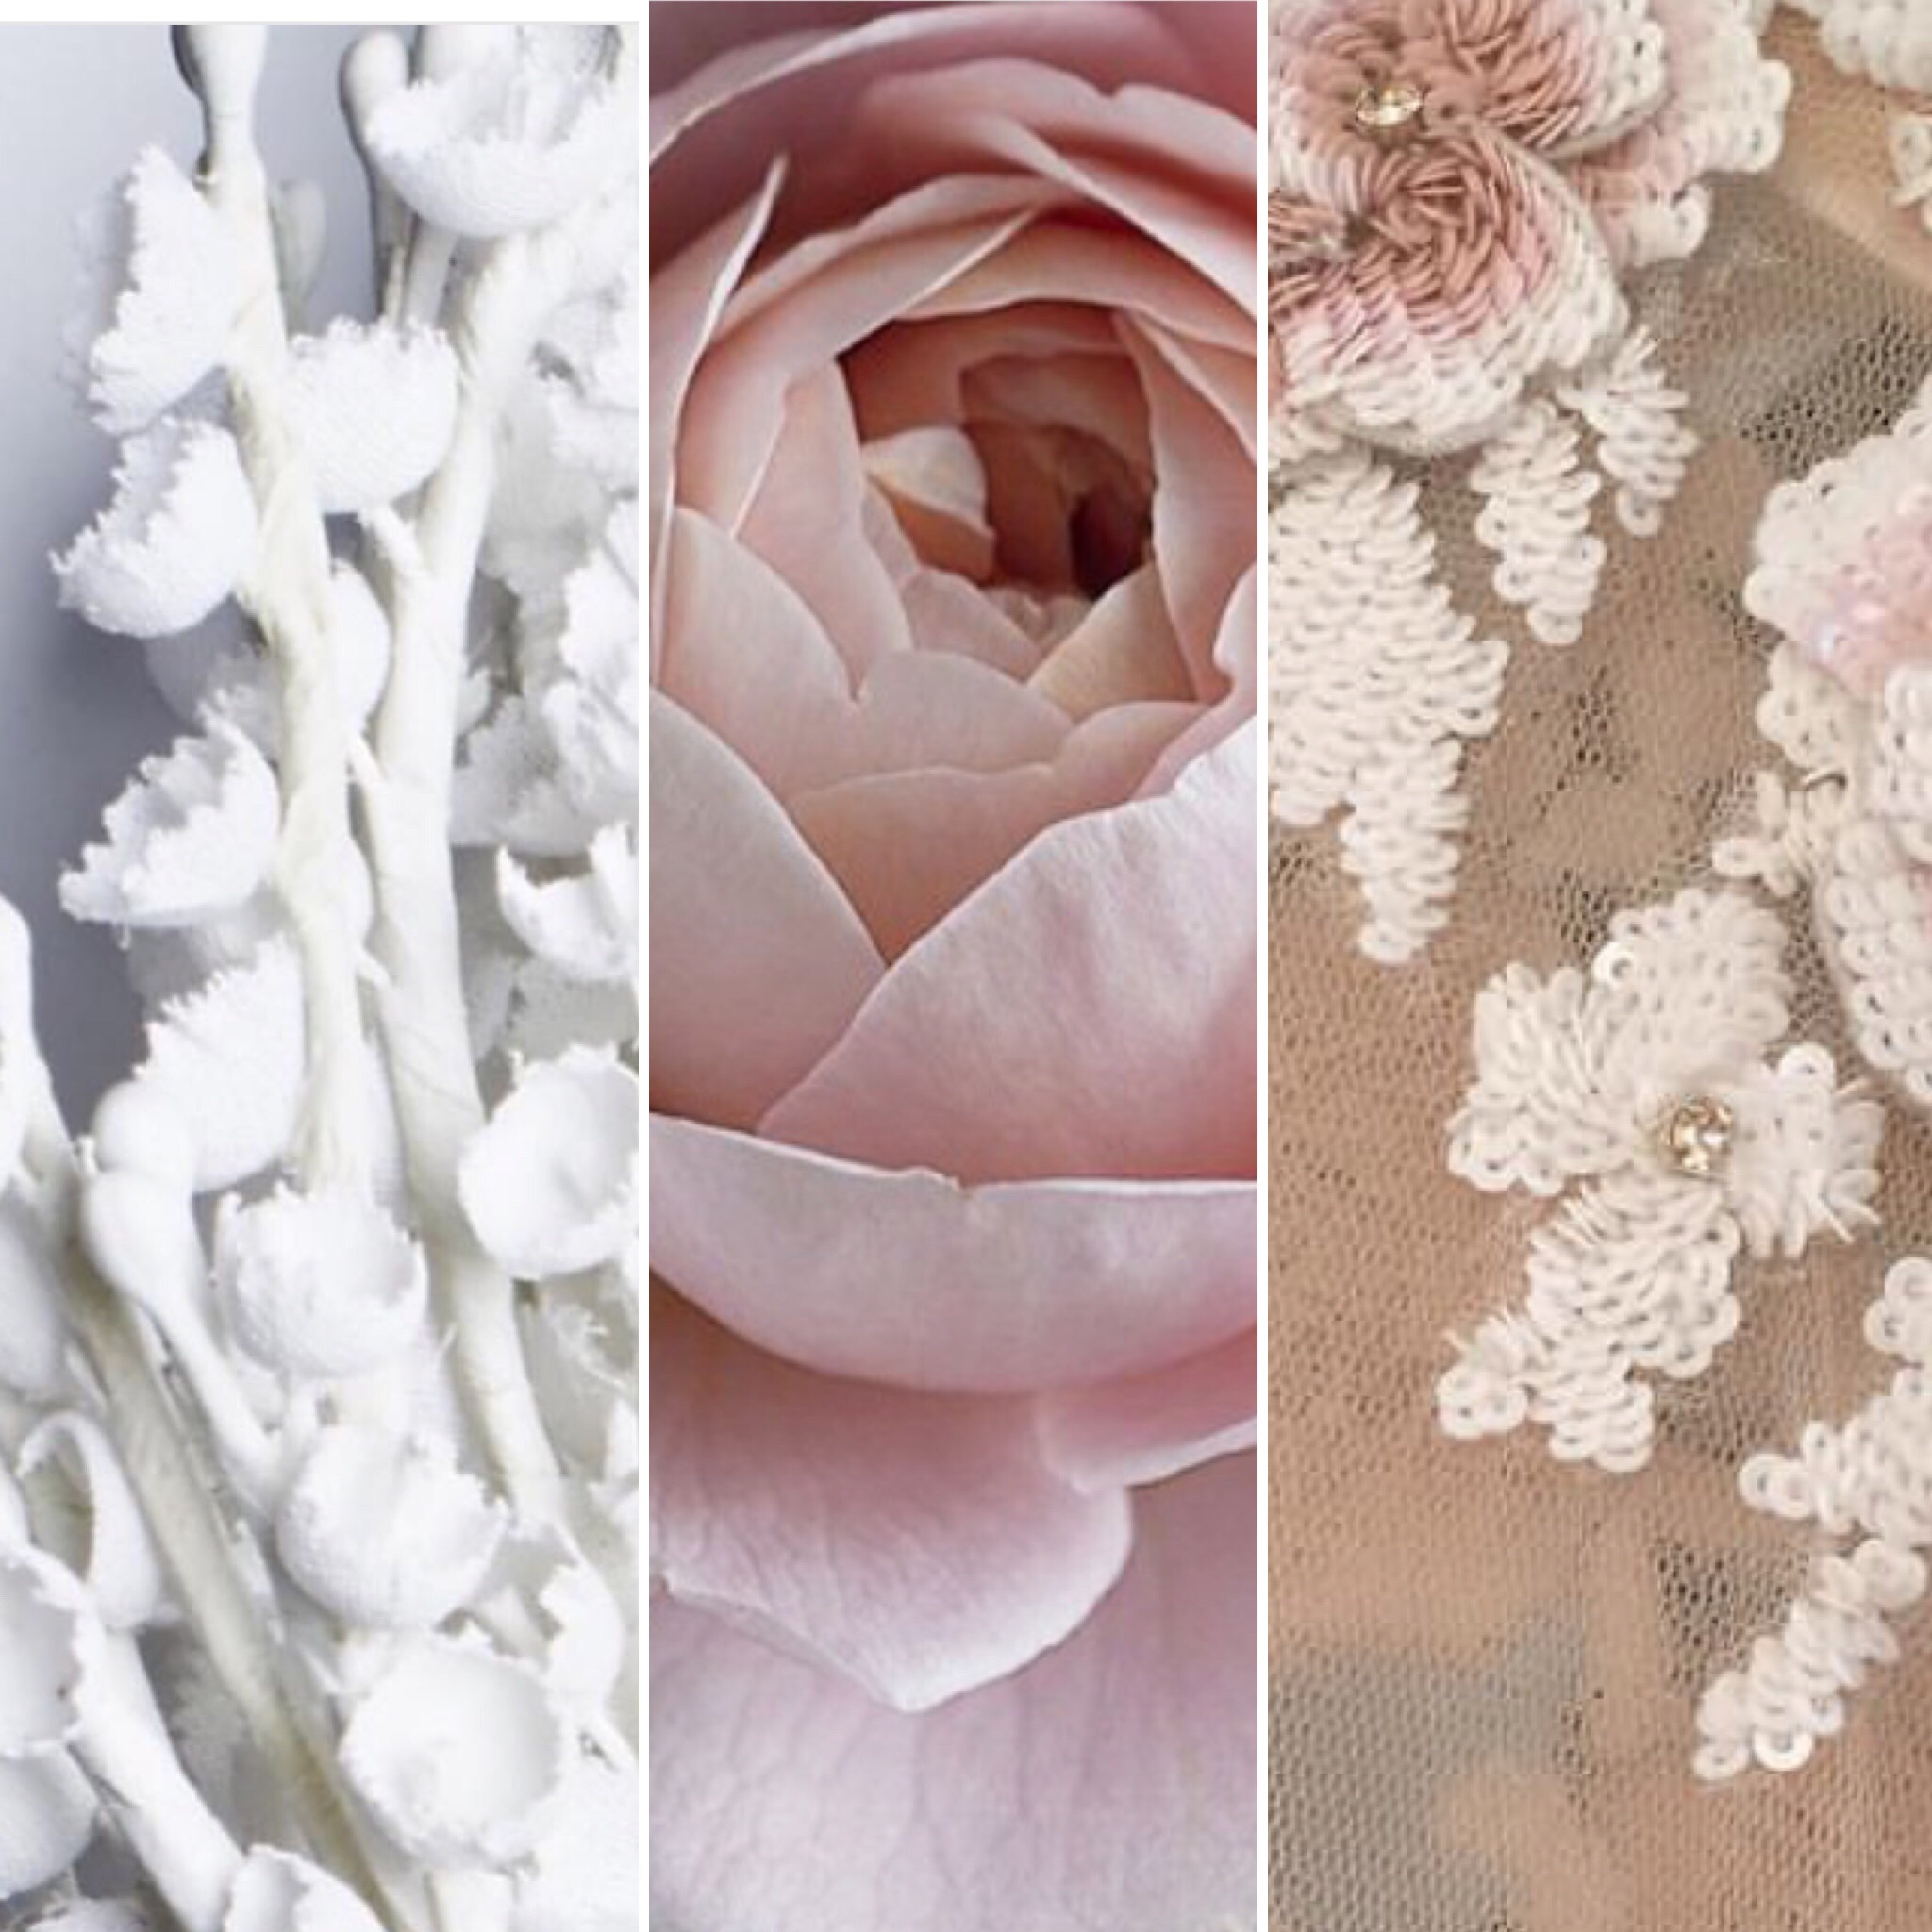 Roses and sequins and porcelain flowers.